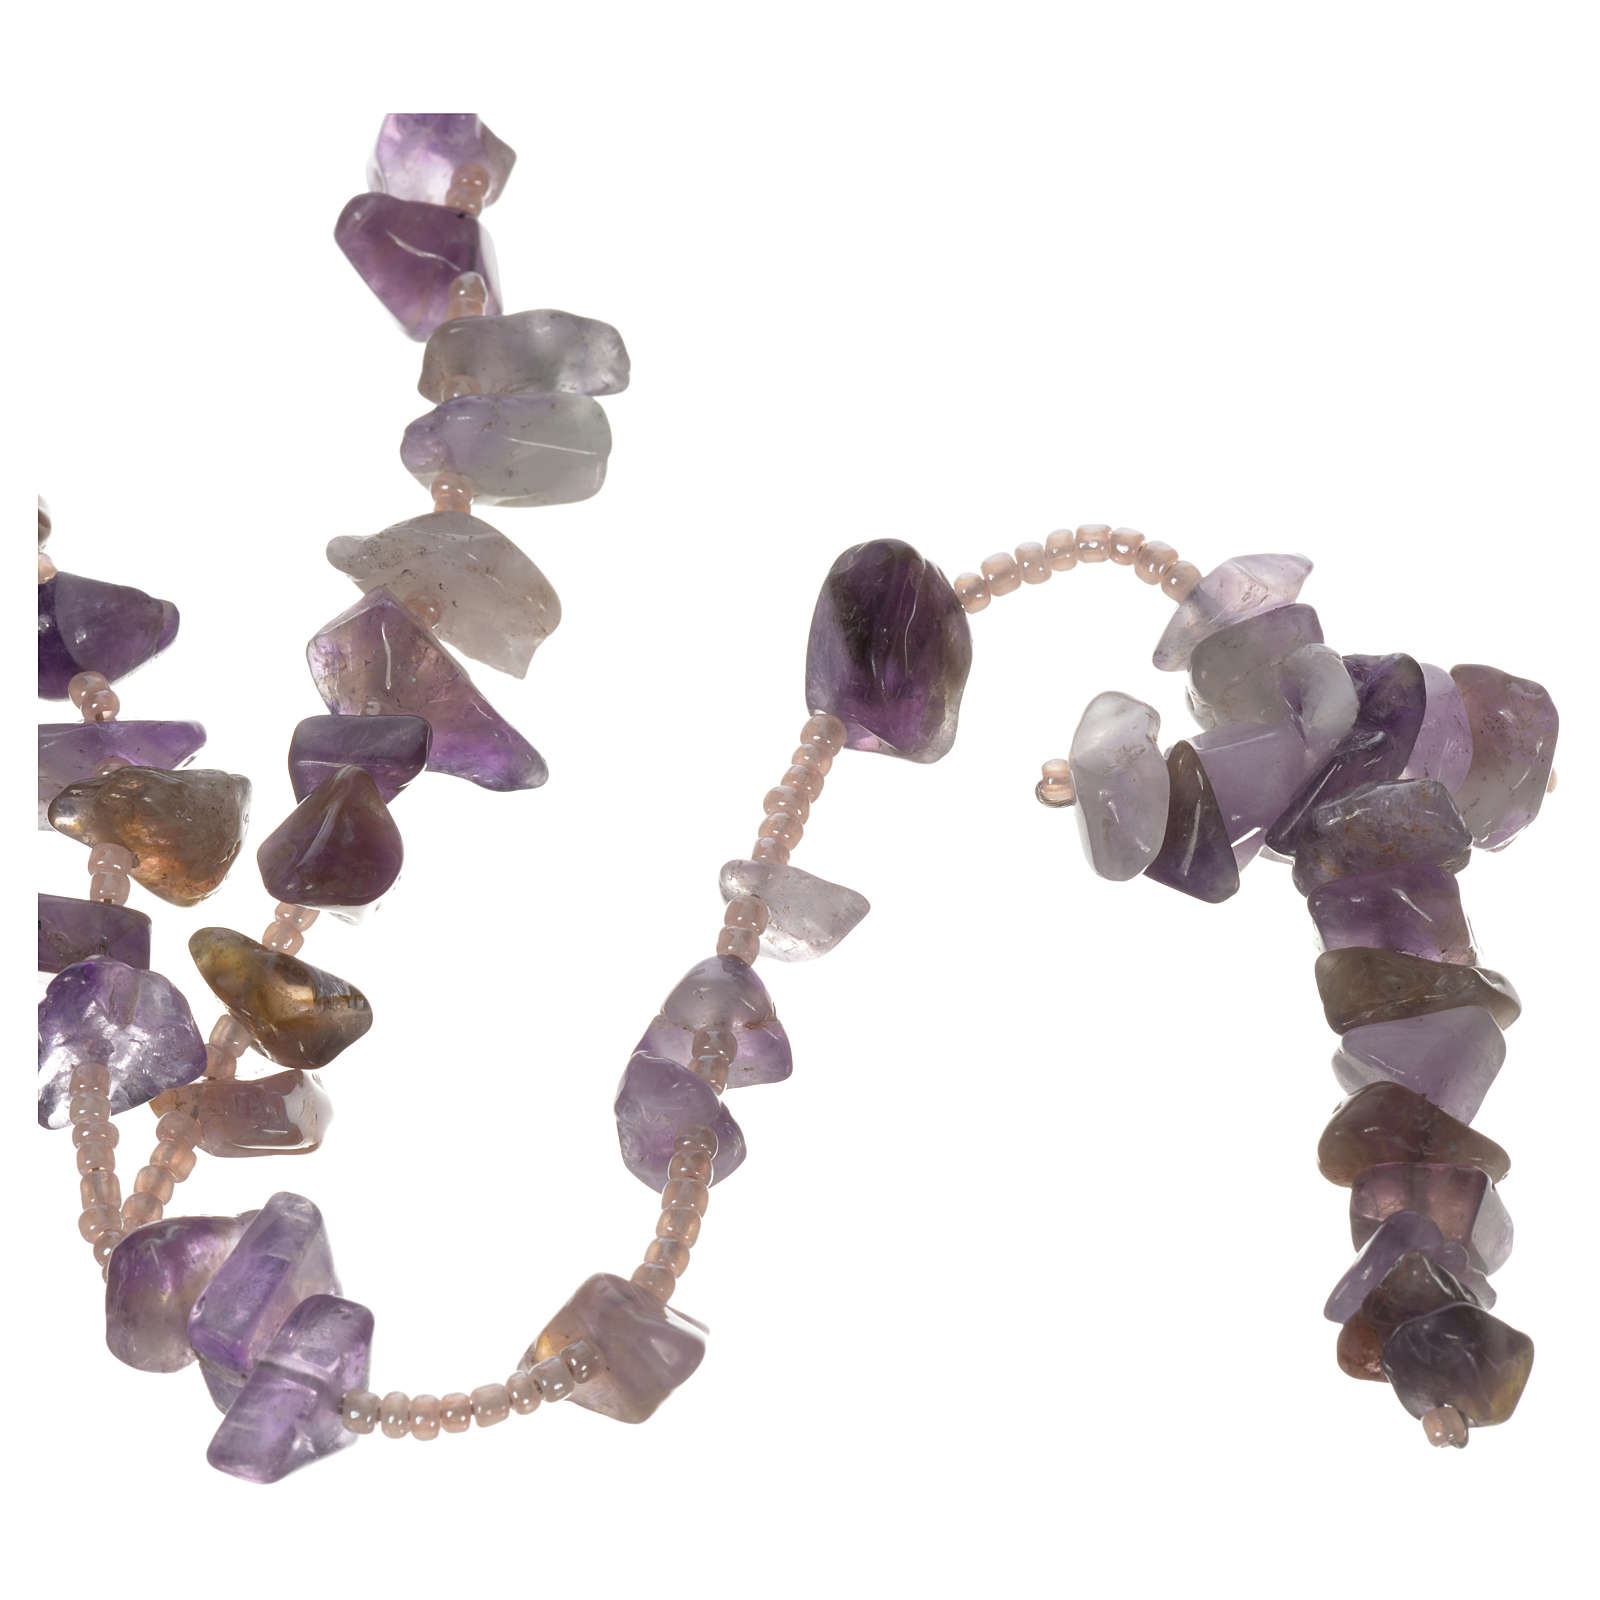 Medjugorje rosary beads in lilac hard stones 4